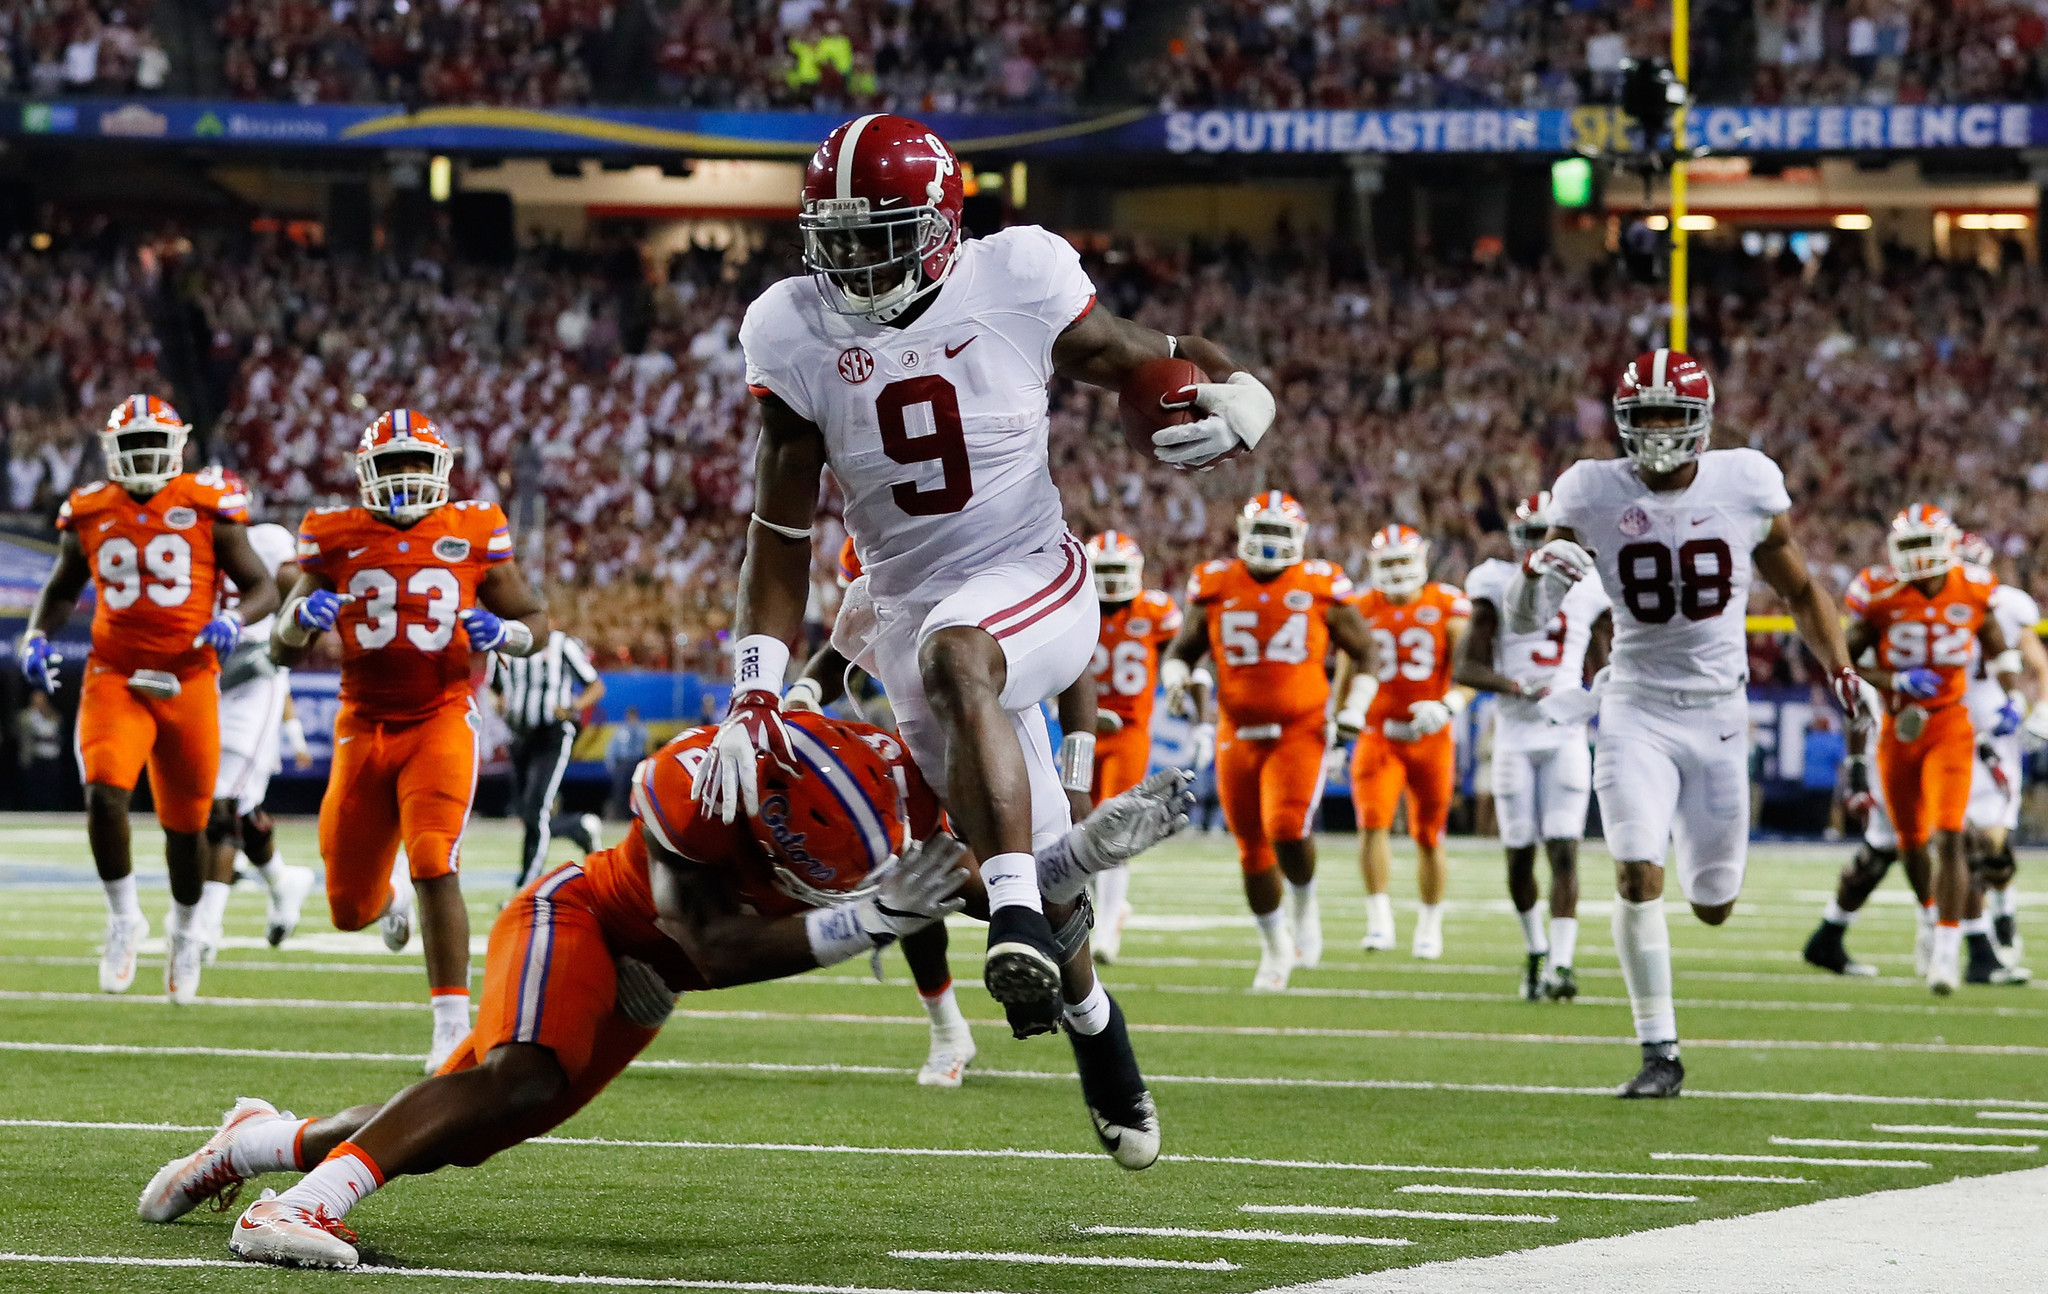 Os-alabama-routs-florida-in-sec-title-game-20161203